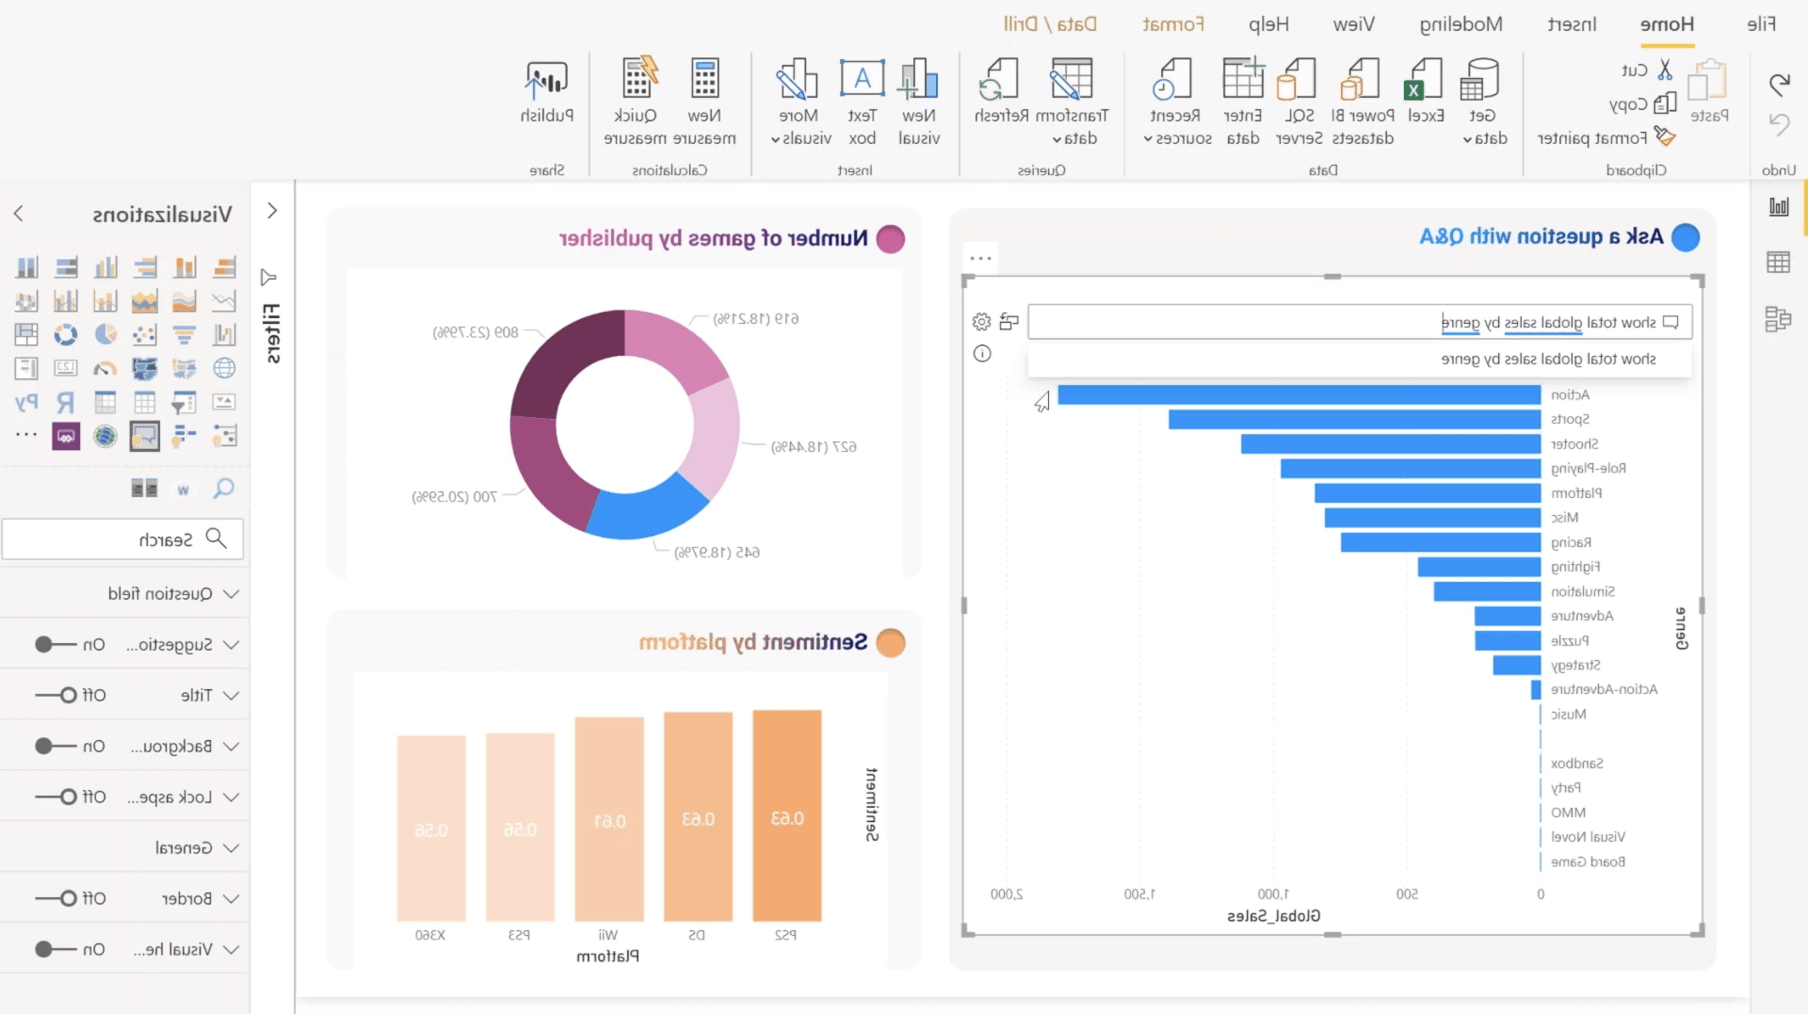 What does Microsoft Business Intelligence do?